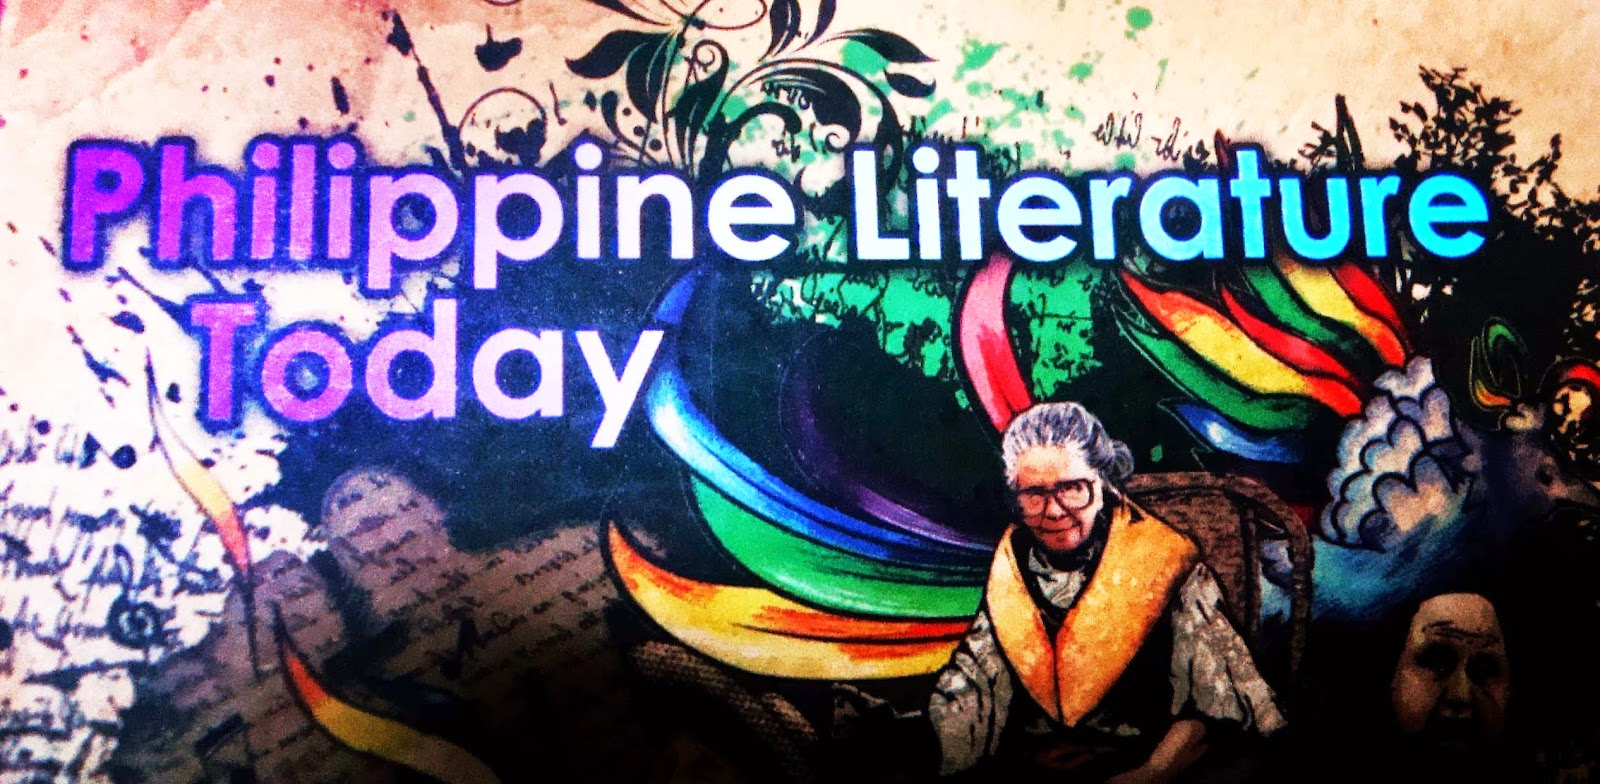 philippine literature The filipino revolutionists won against the spaniards who colonized us for more than 300 years our flag was hoisted on june 12, 1898 as a symbol of our independence.